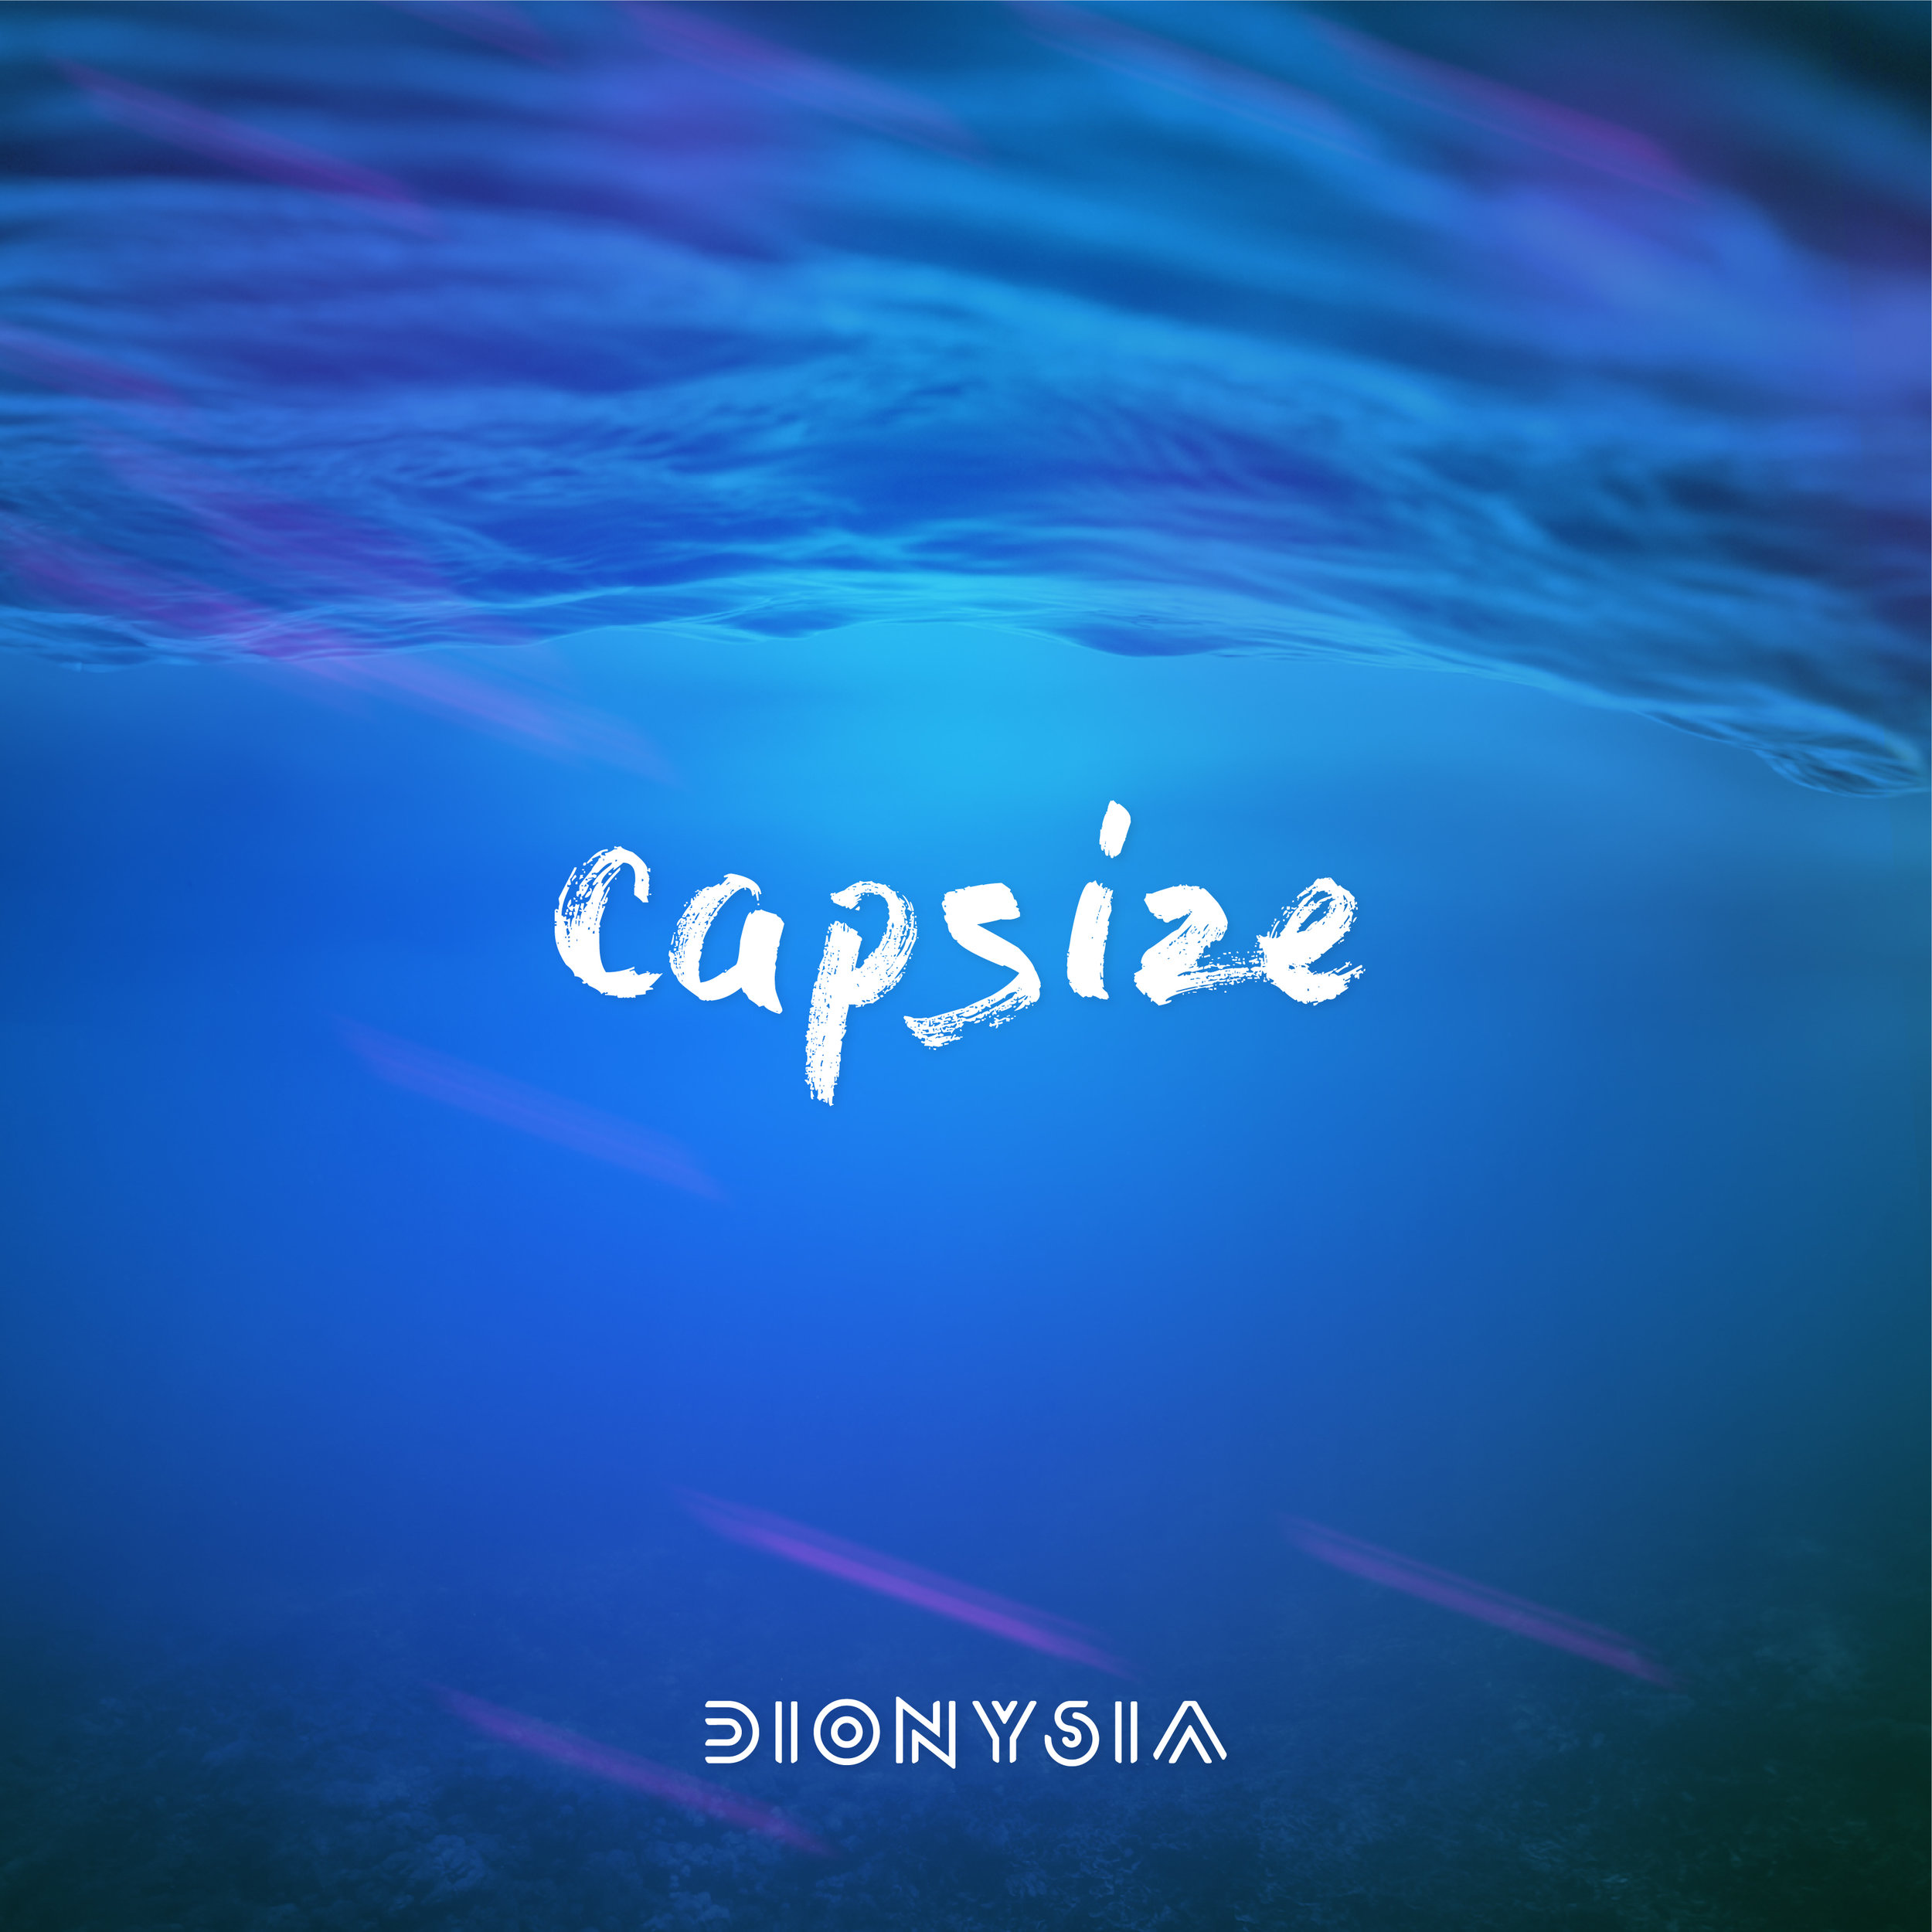 NOW AVAILABLE! - The first single off our new record CATALYZE.